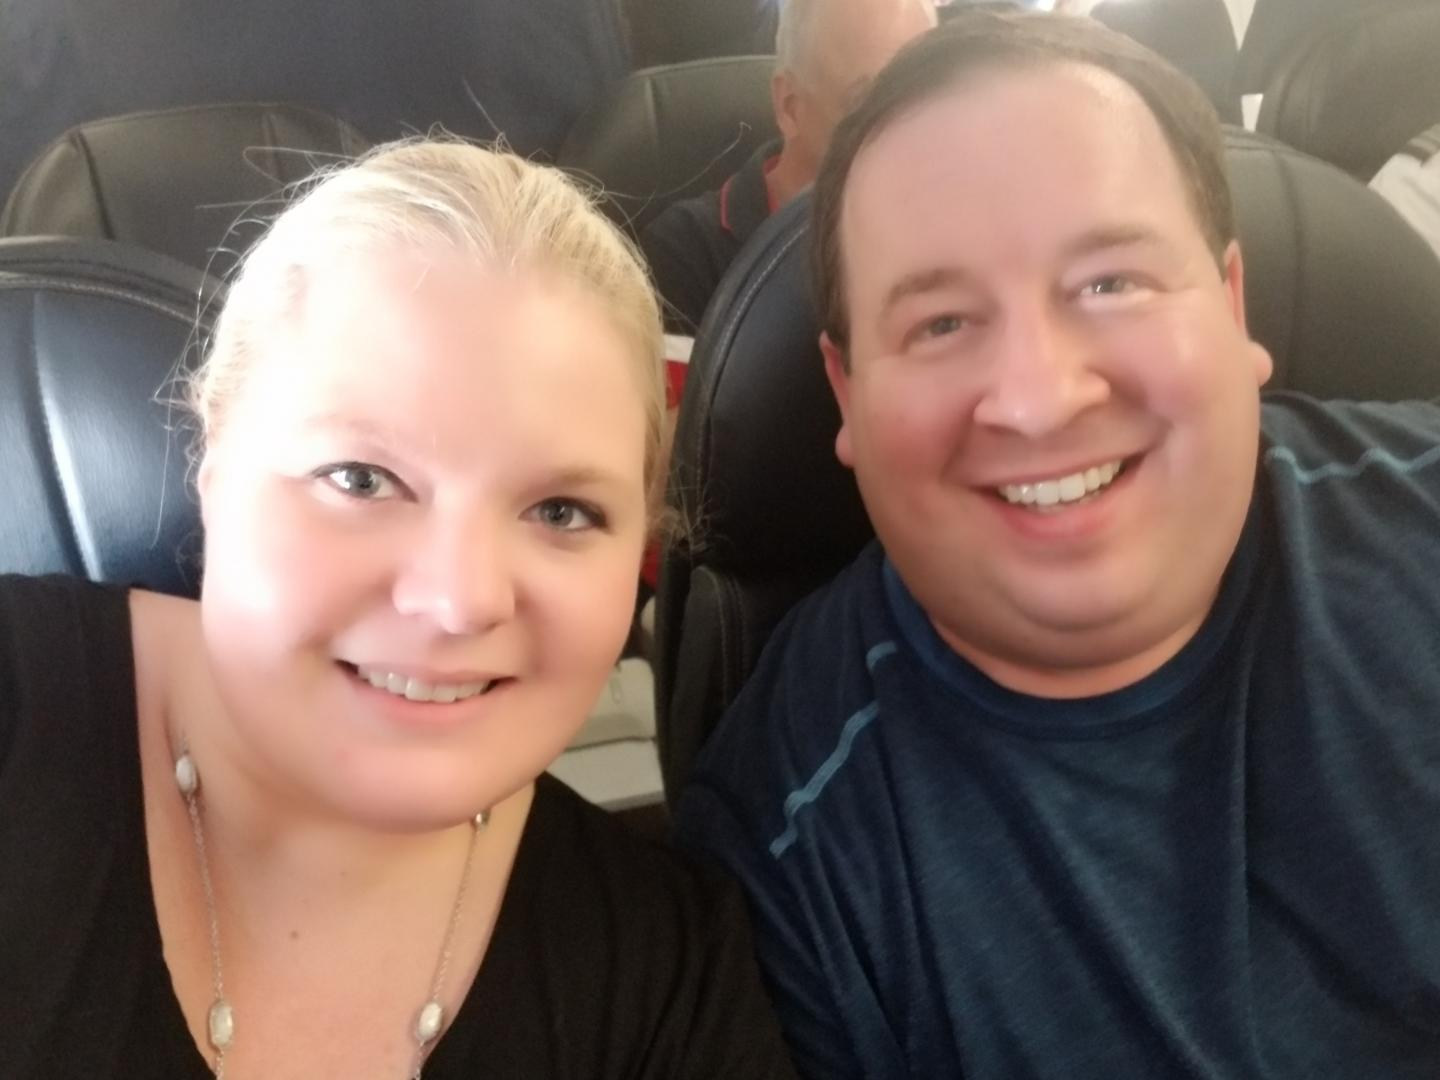 mindy yowell and stephen duncan's Honeymoon Registry